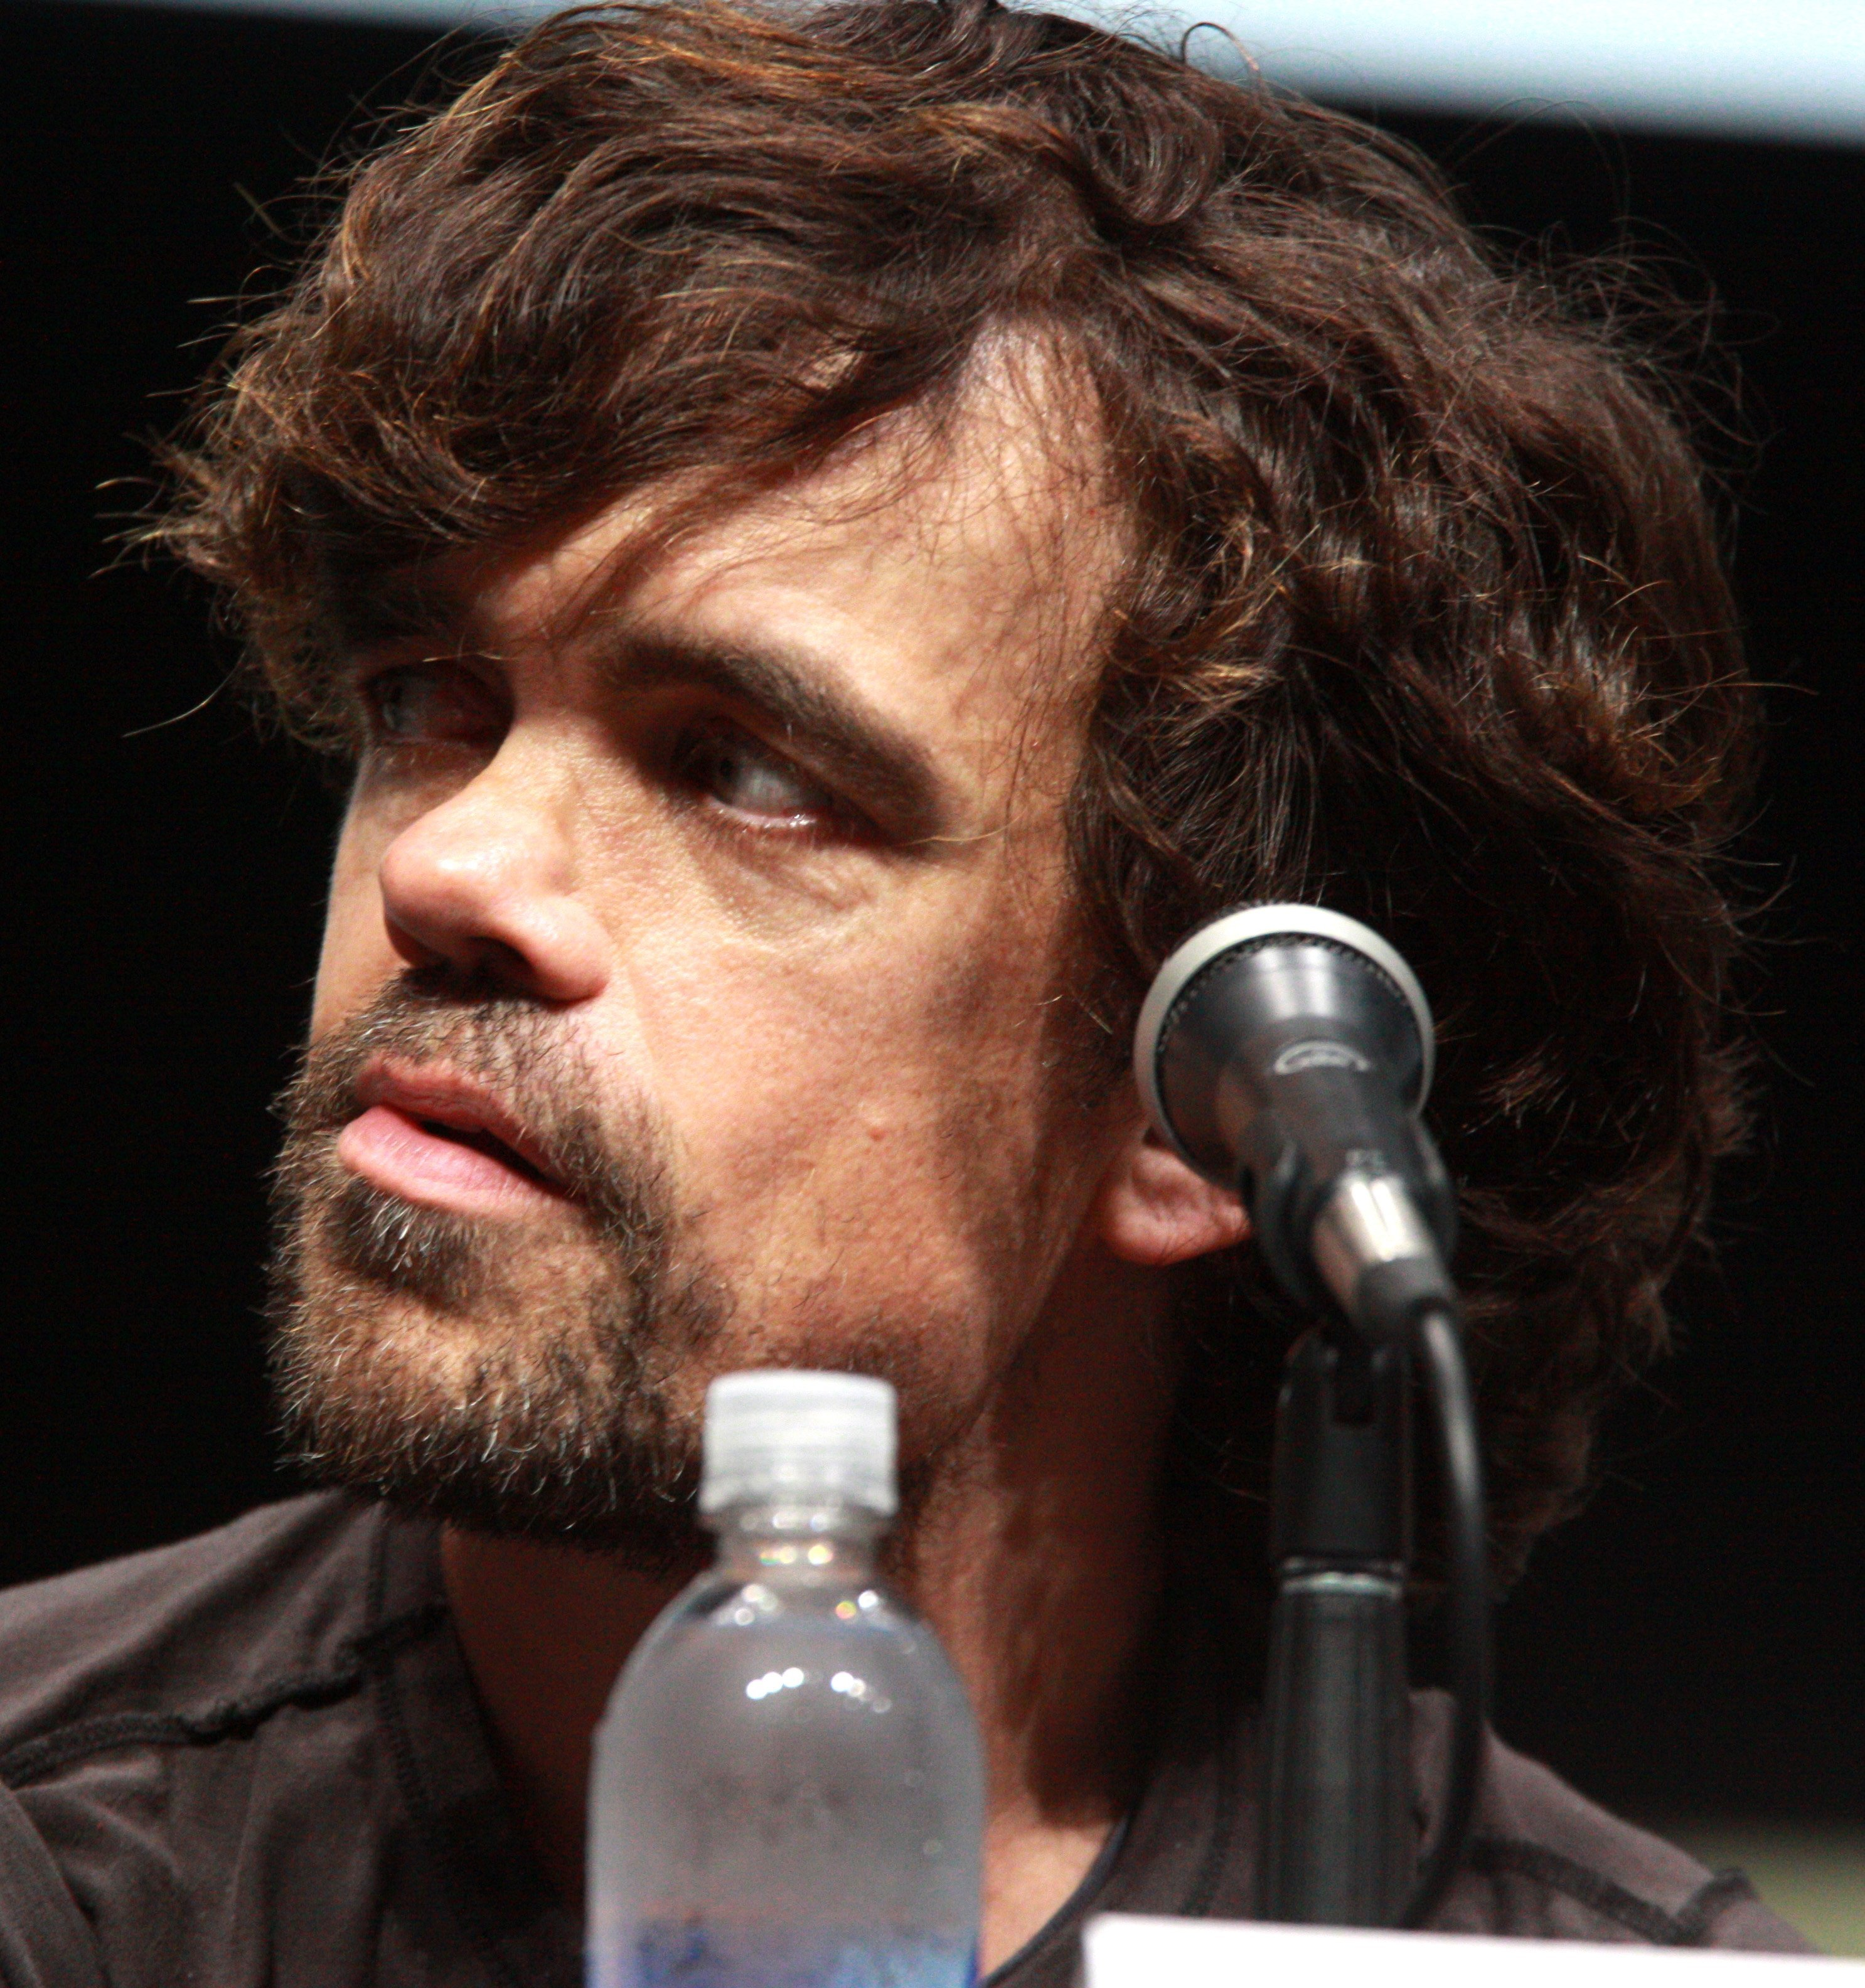 Peter Dinklage at the 2013 San Diego Comic-Con | Source: WikimediaCommons